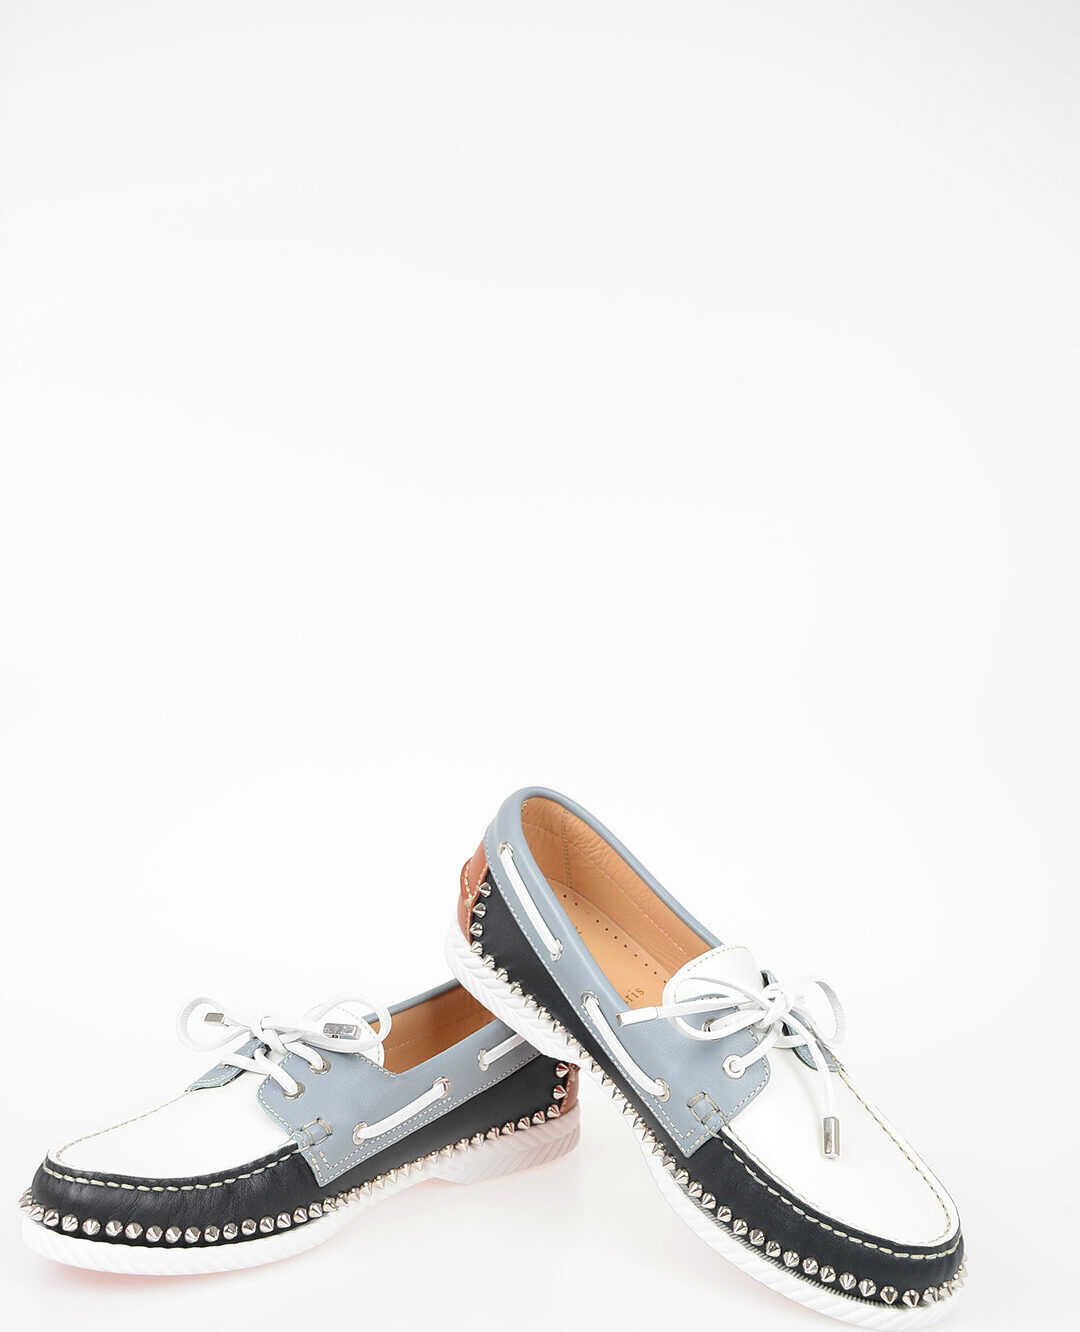 Christian Louboutin Studded Loafers MULTICOLOR